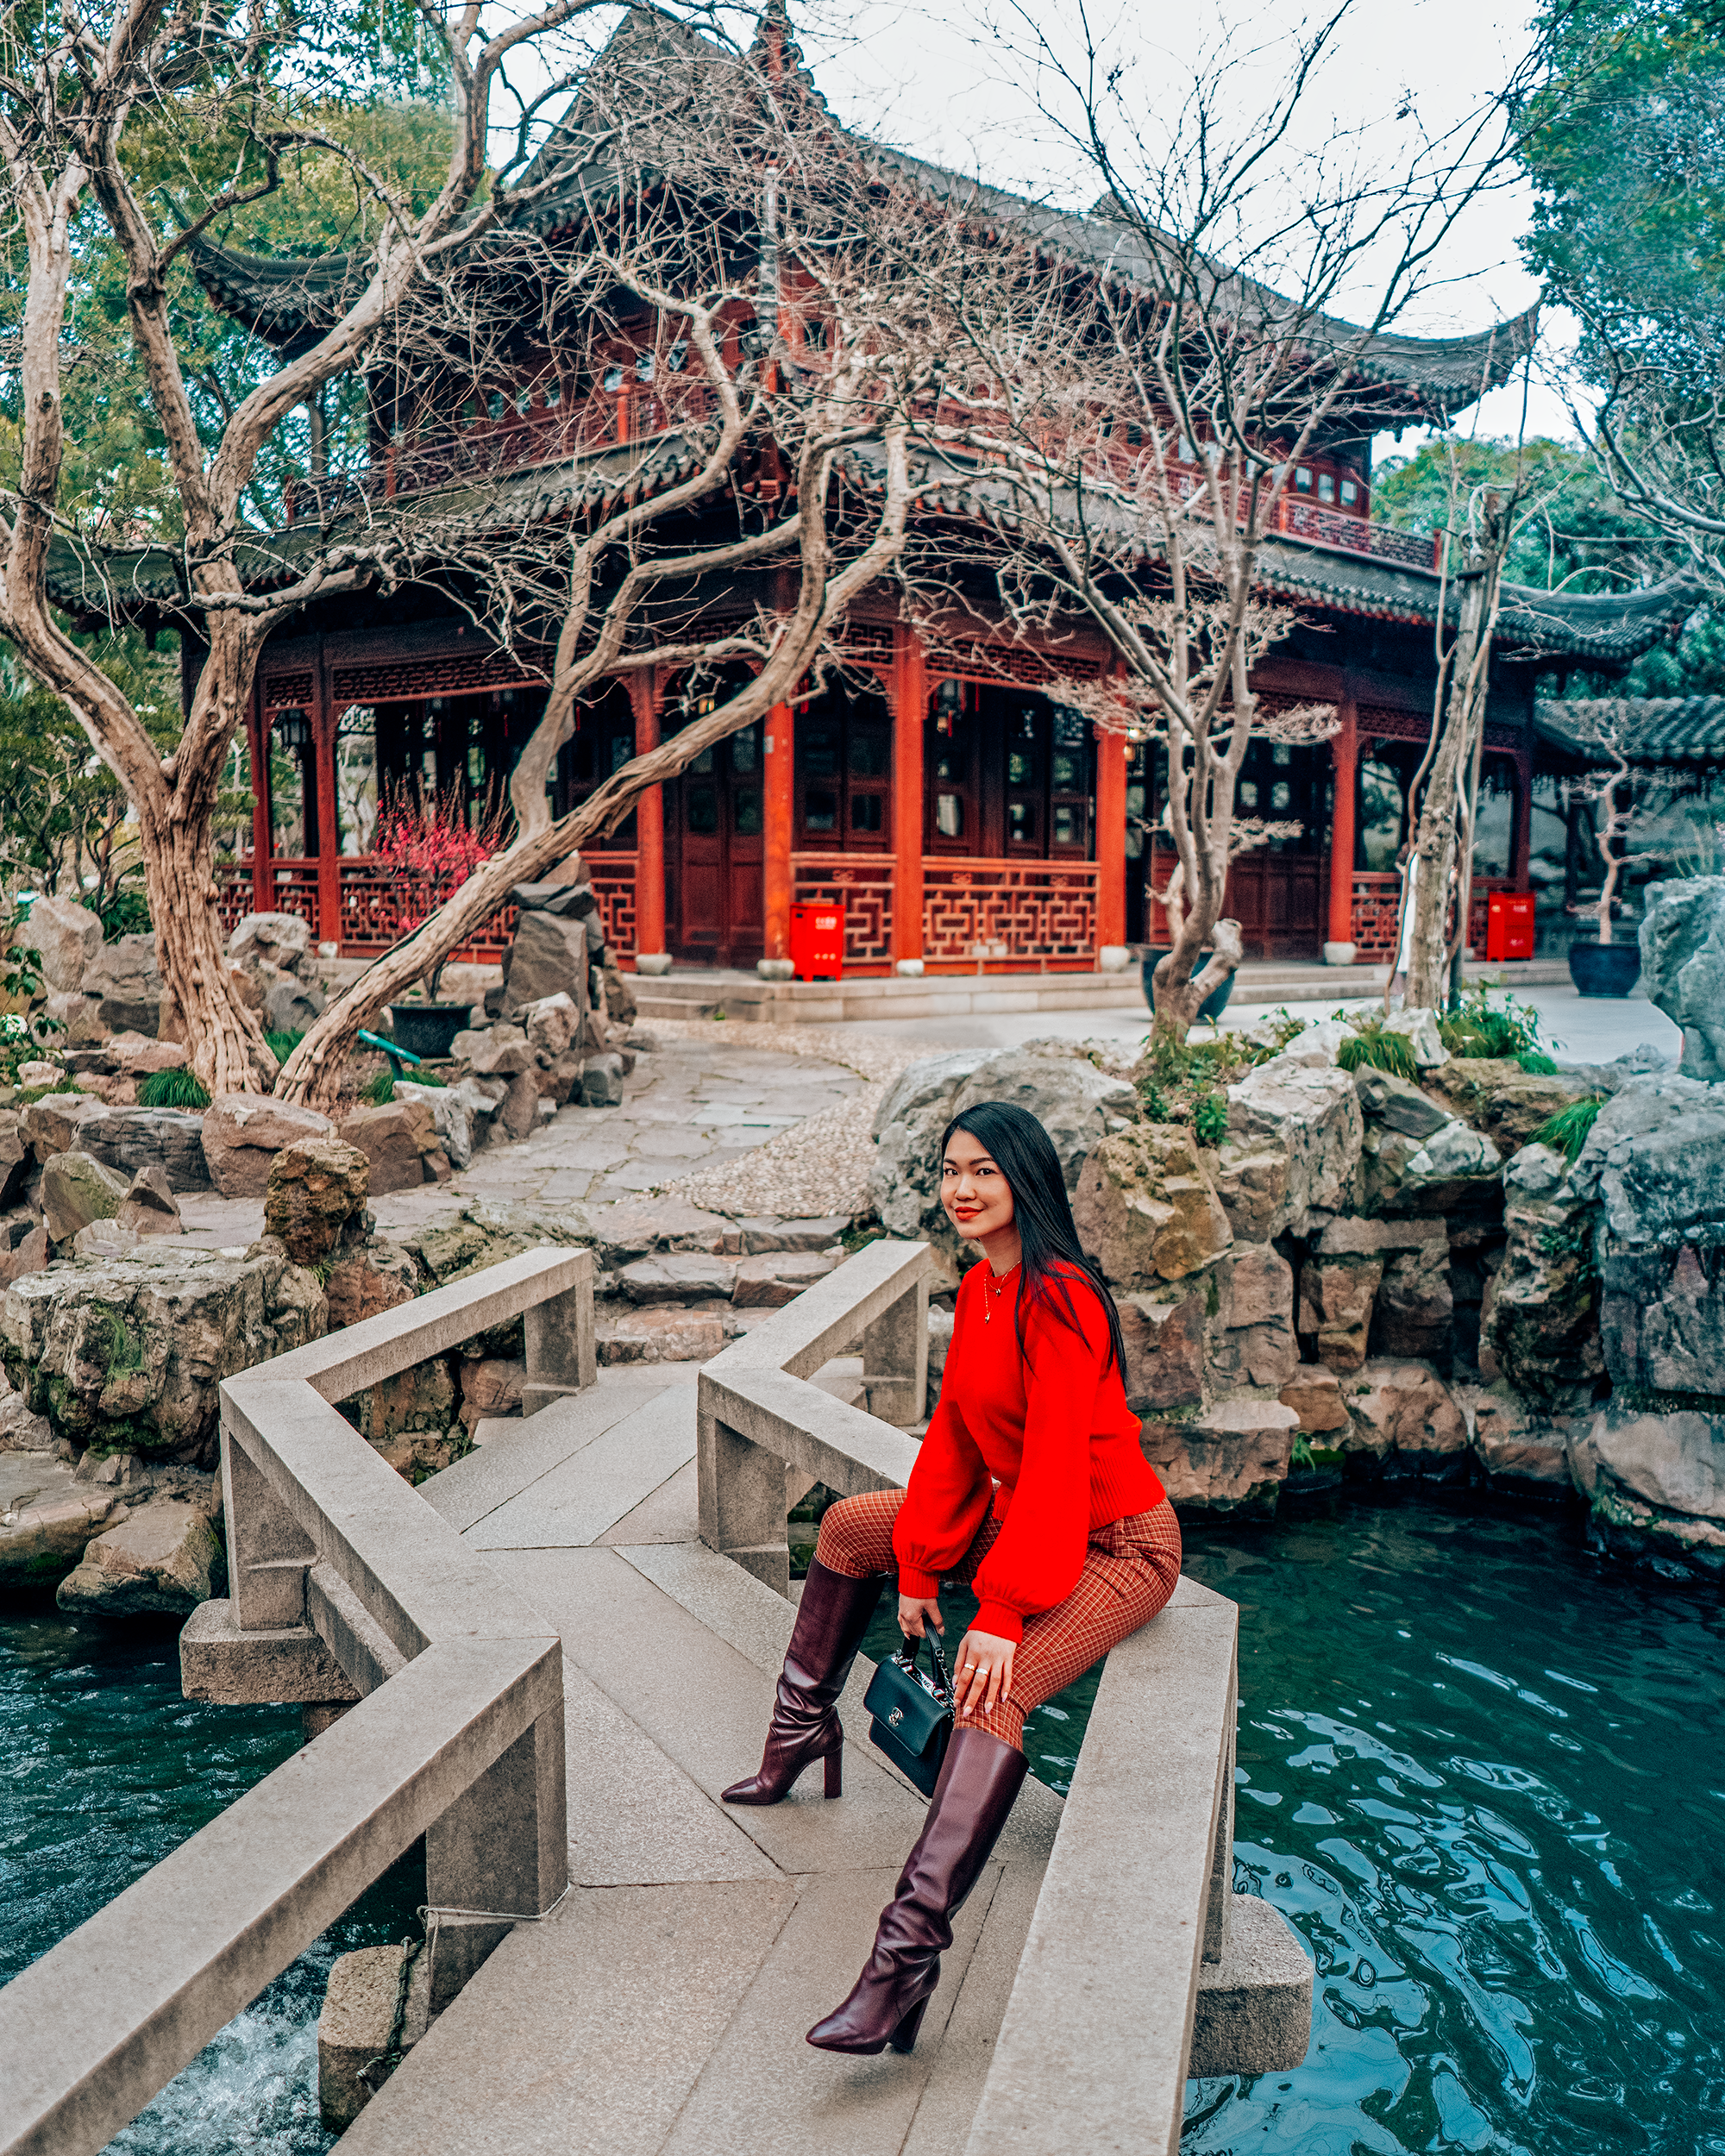 Taking a moment to myself in the serenity of Yu Garden.